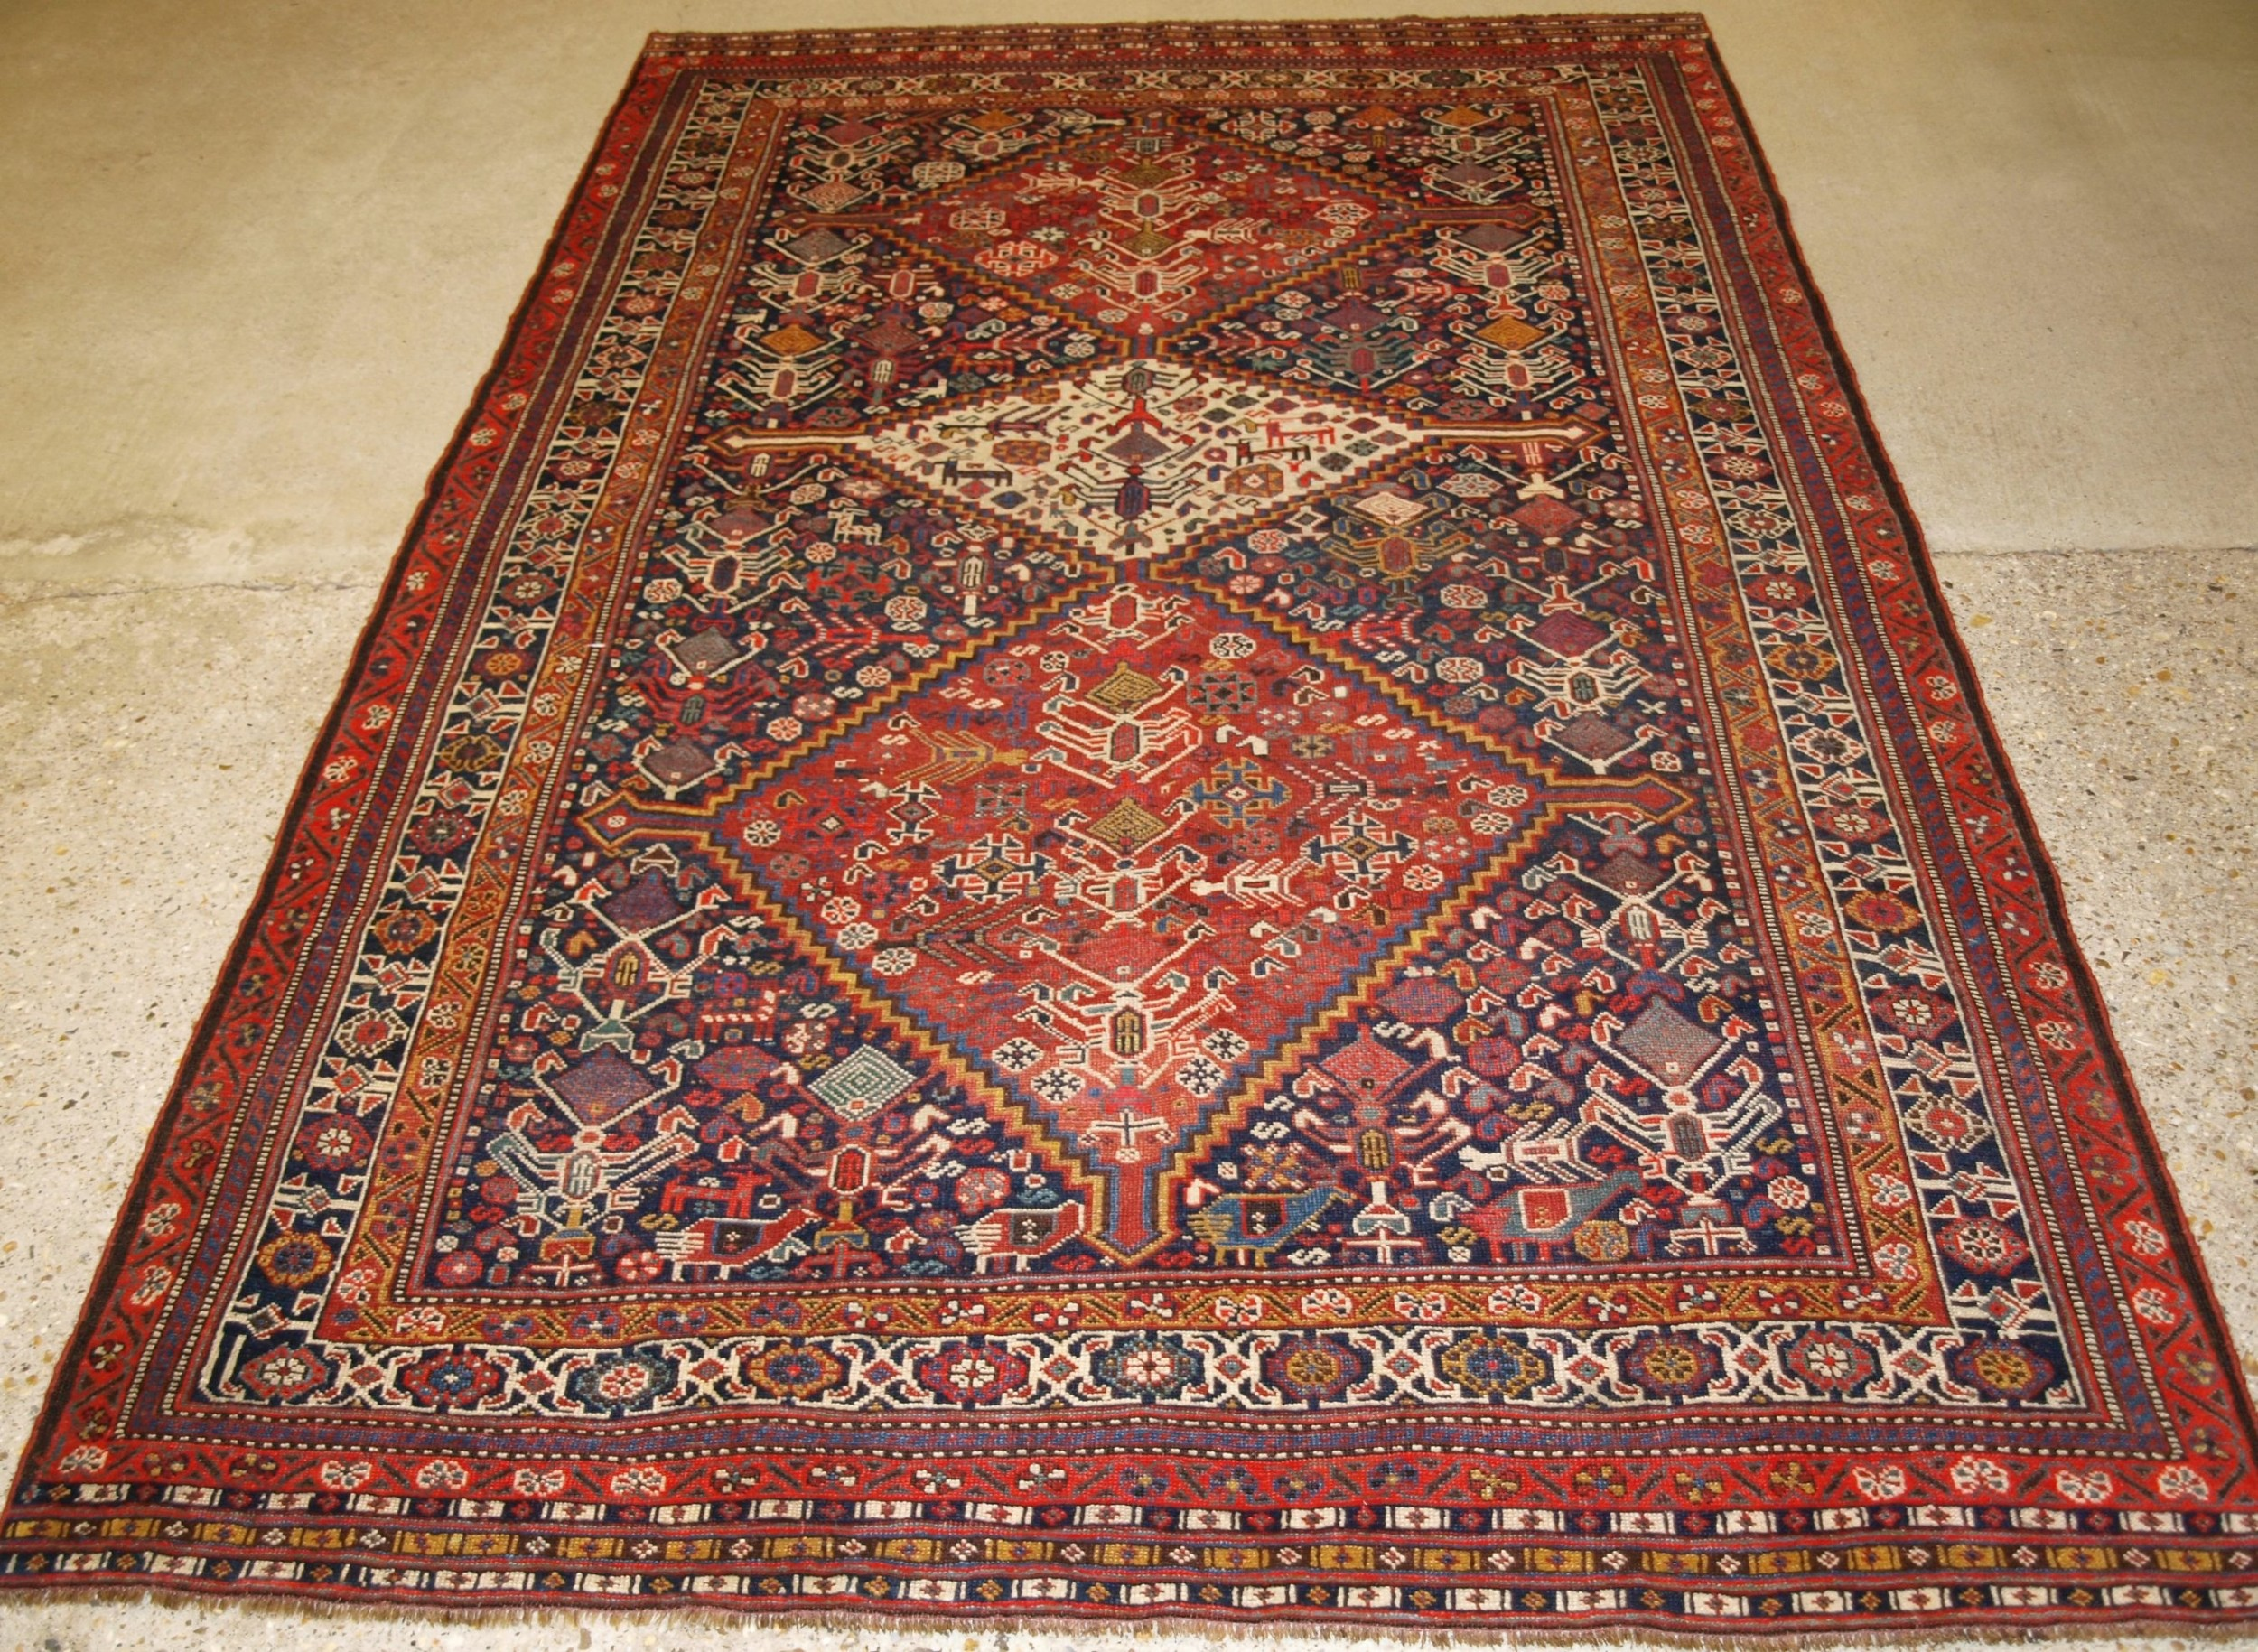 antique tribal qashqai rug beautiful drawing with lots of animals late 19th century